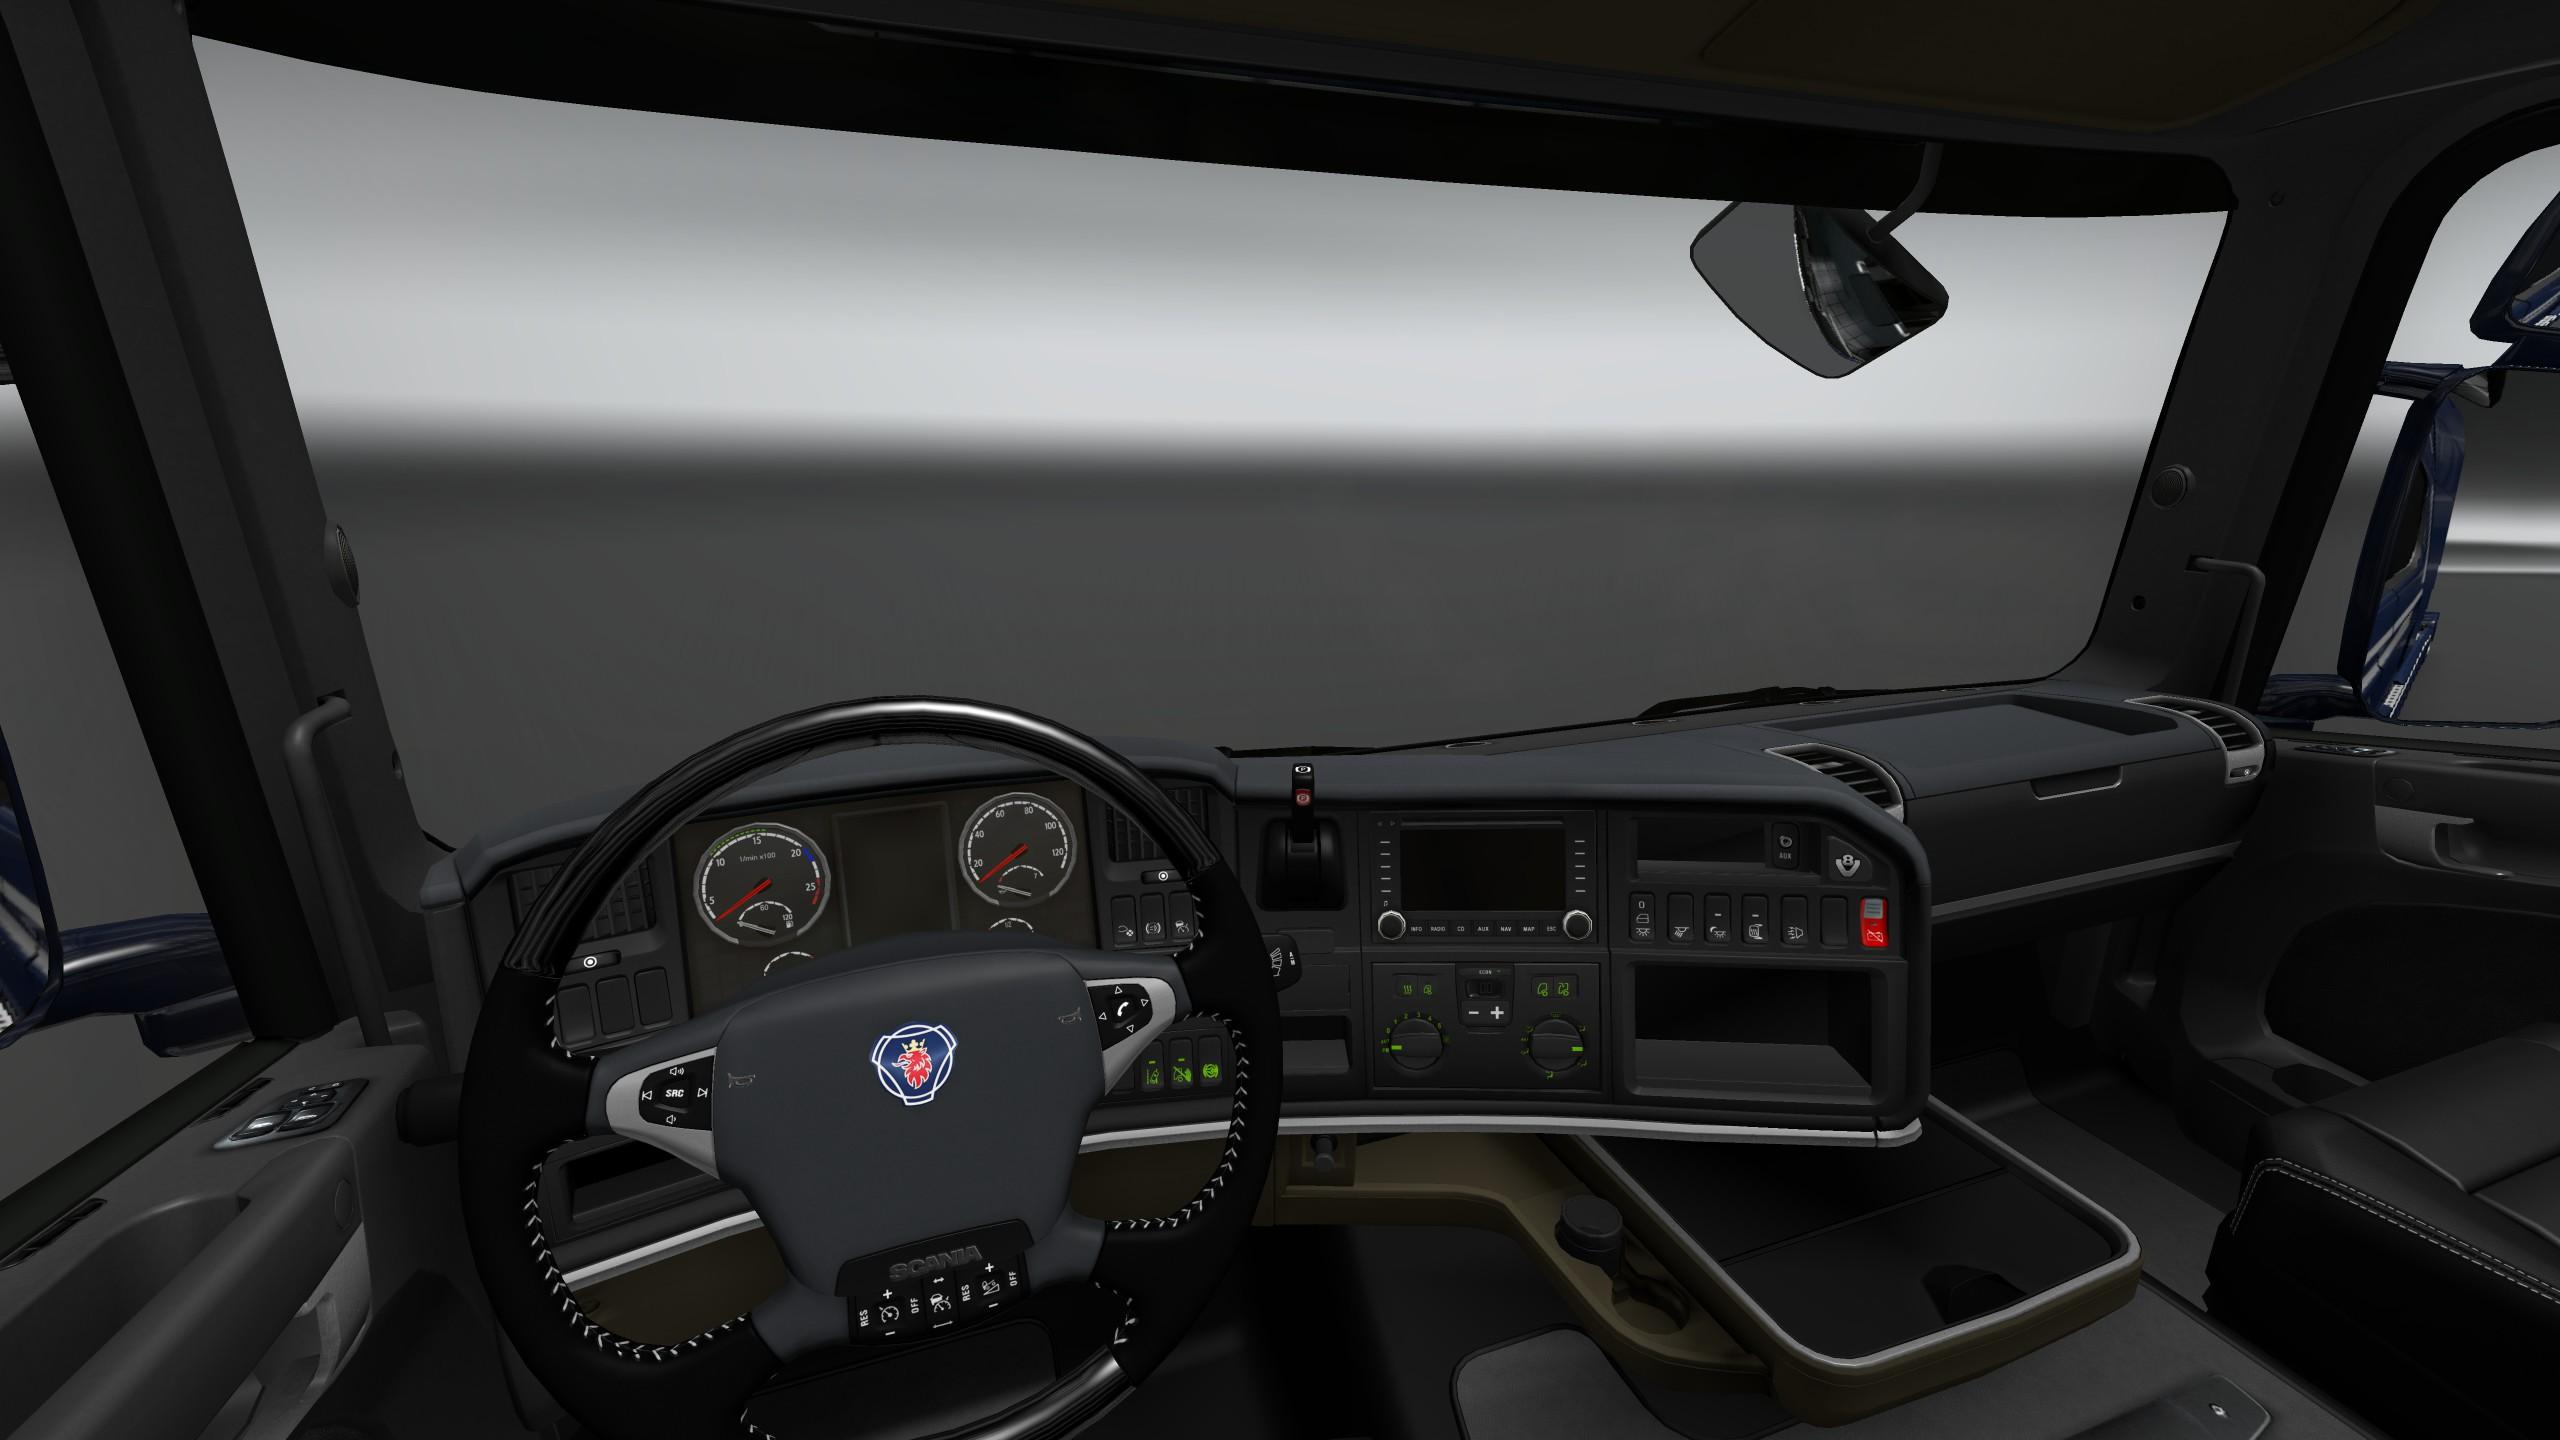 Scania trucks interiors exteriors improvements pack for ets2 truck simulator mods